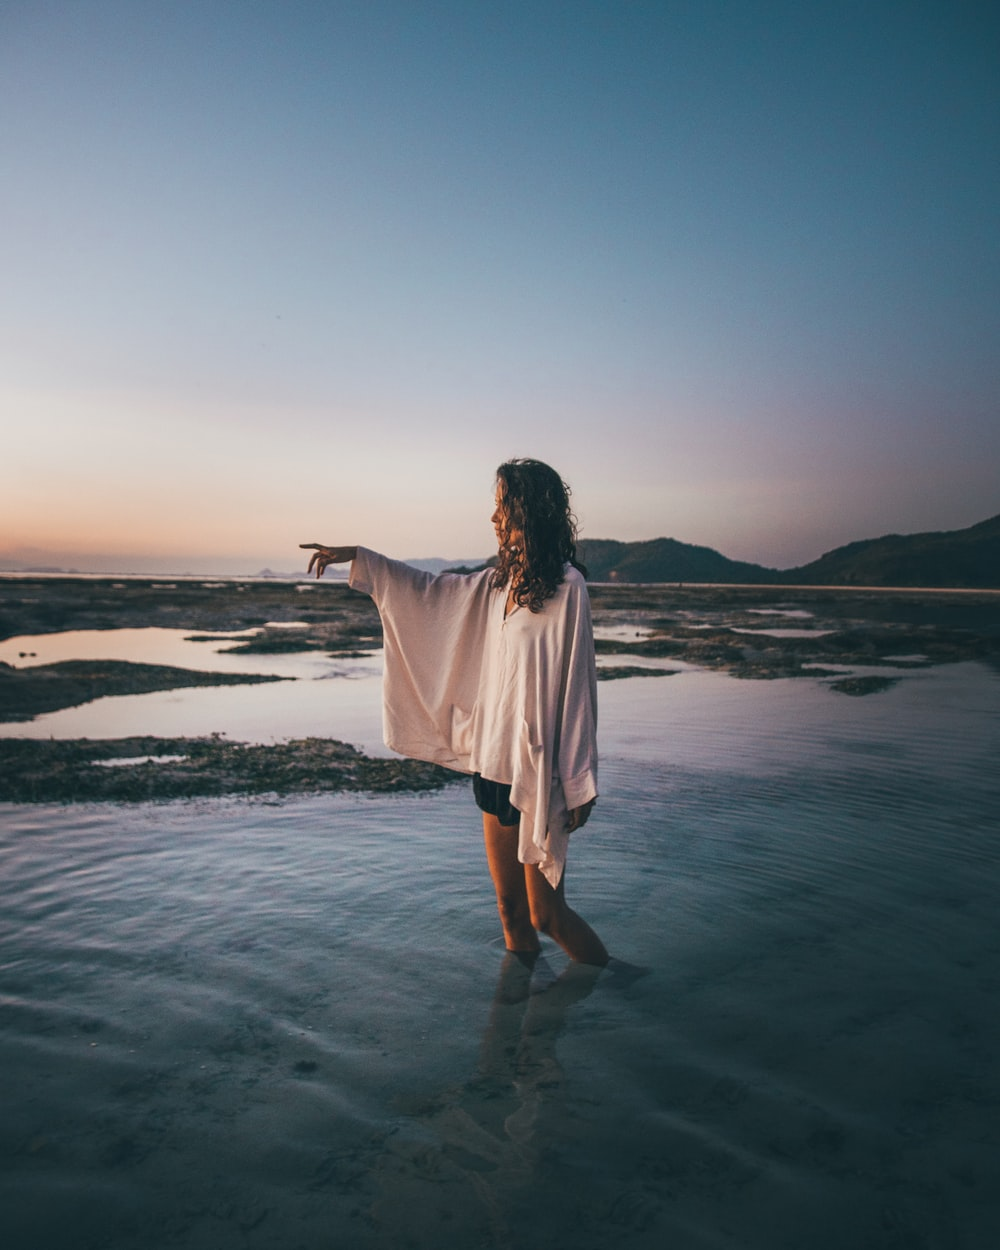 woman wearing white blouse standing on water